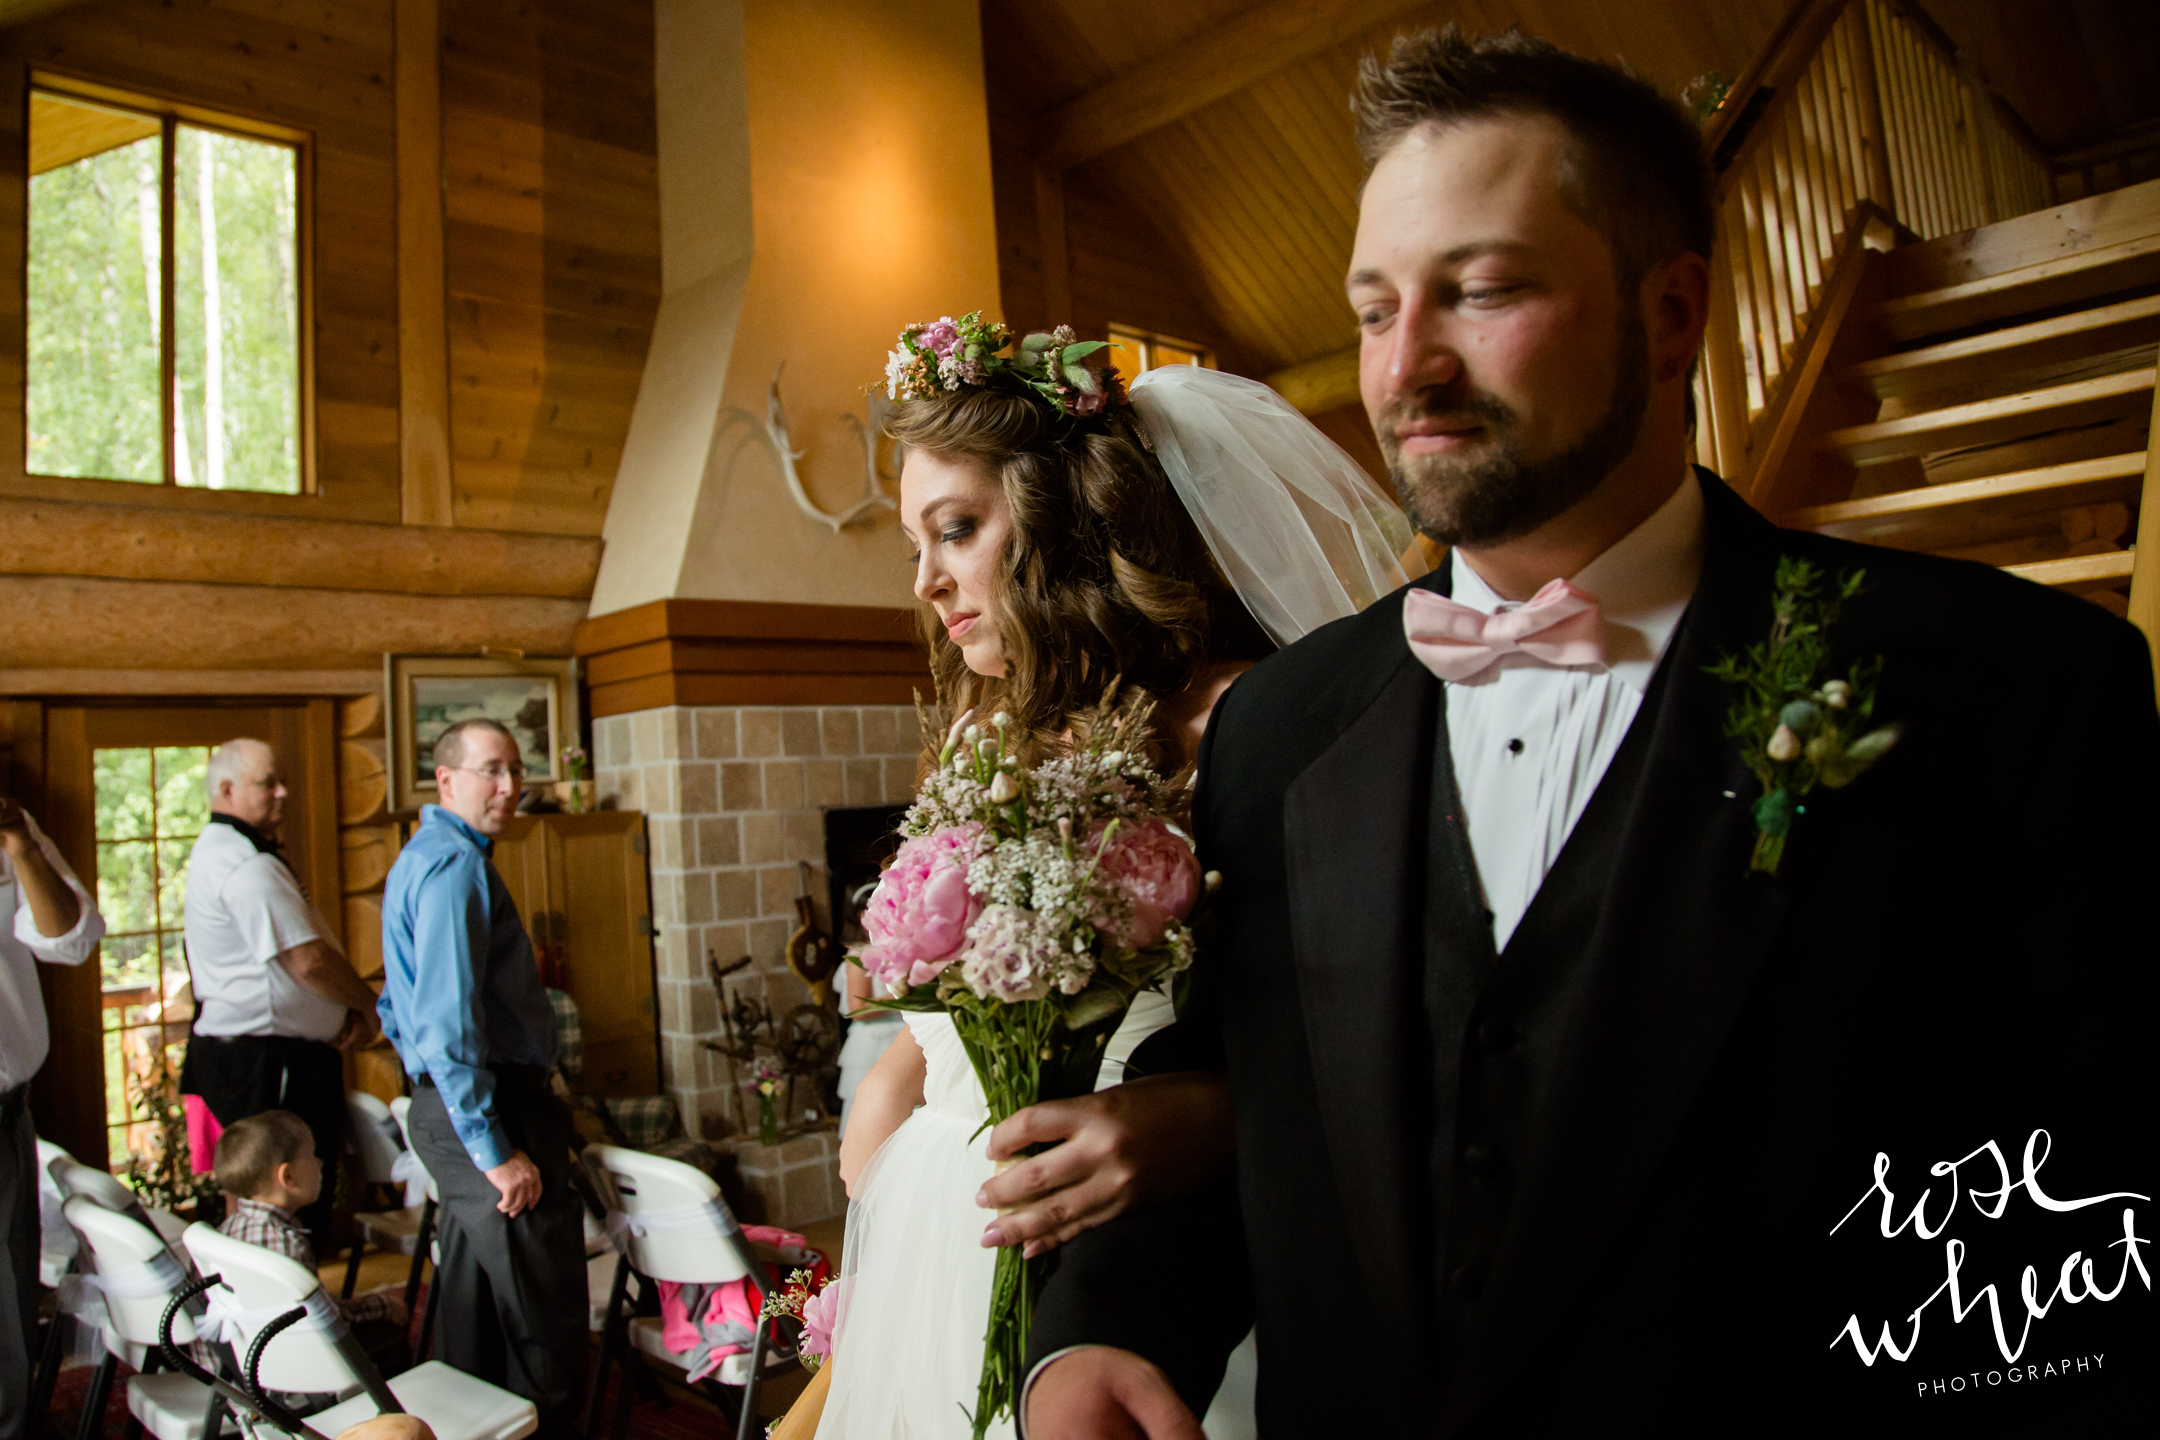 13. Calypso_Farms_Wedding_Fairbanks_AK_Rose_Wheat_Photography.jpg-1.jpg-19.jpg